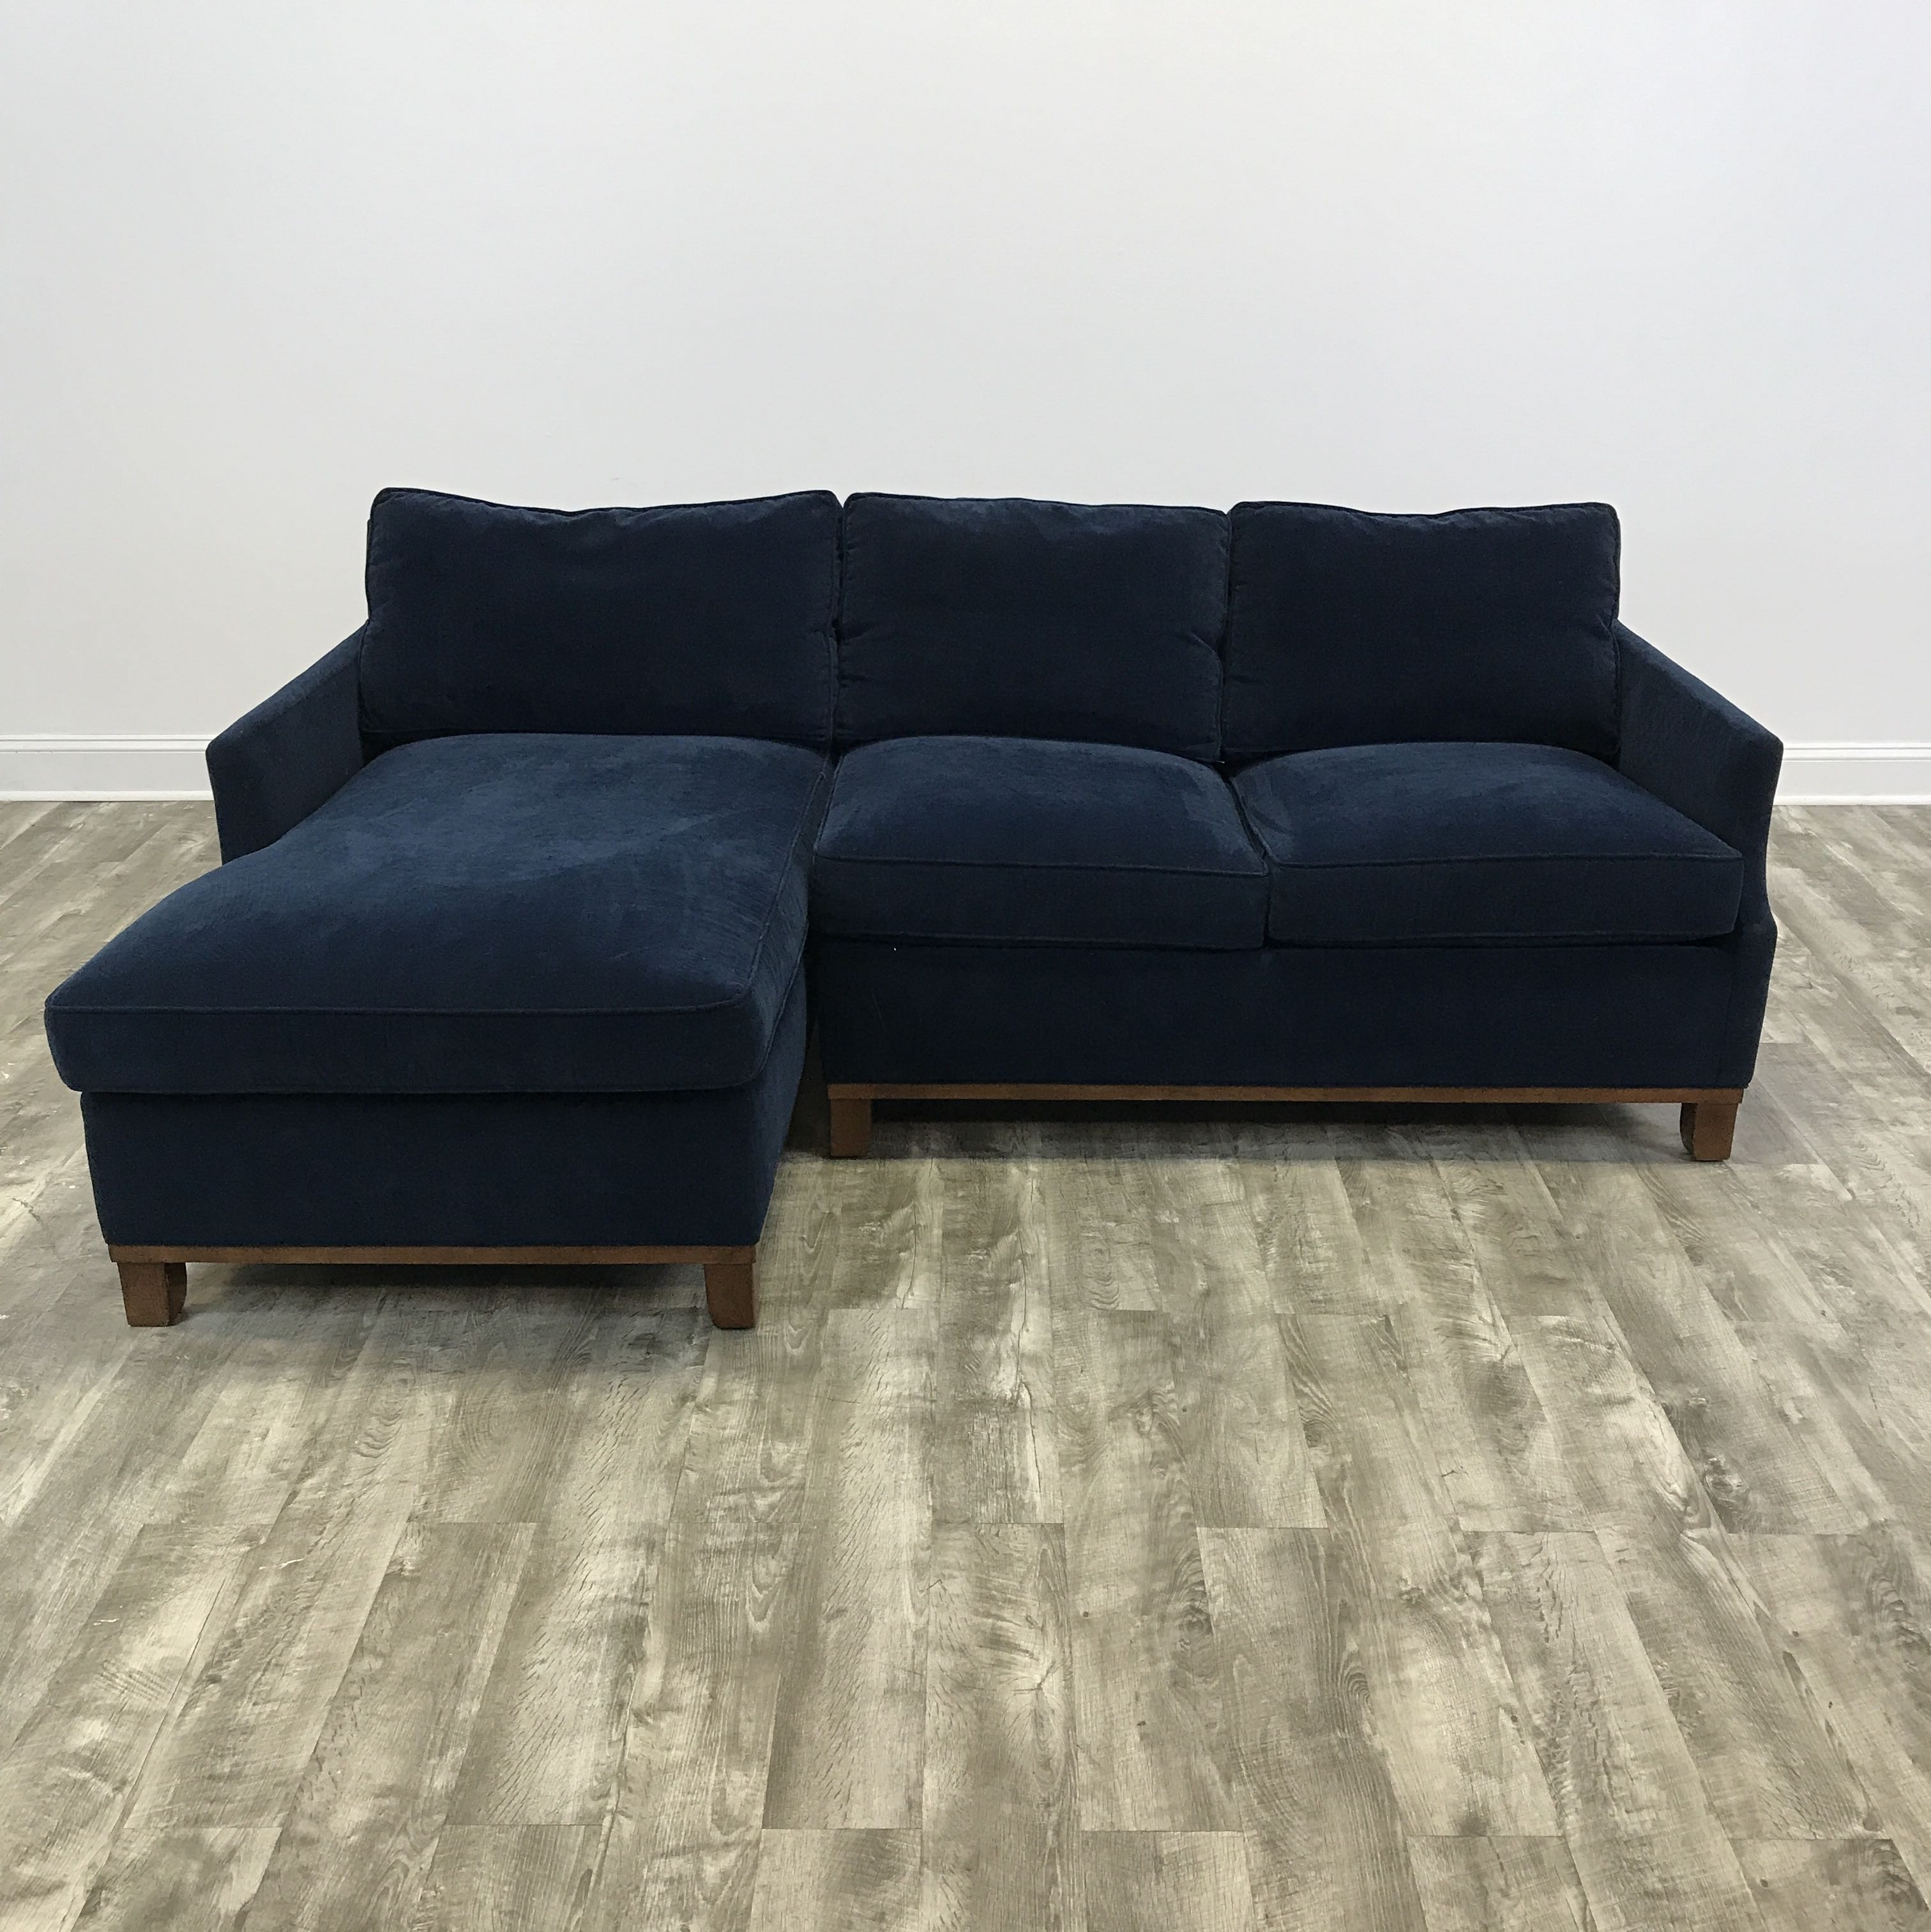 Navy Velvet Sectional - Intnl-Wildrover inside Delano 2 Piece Sectionals With Raf Oversized Chaise